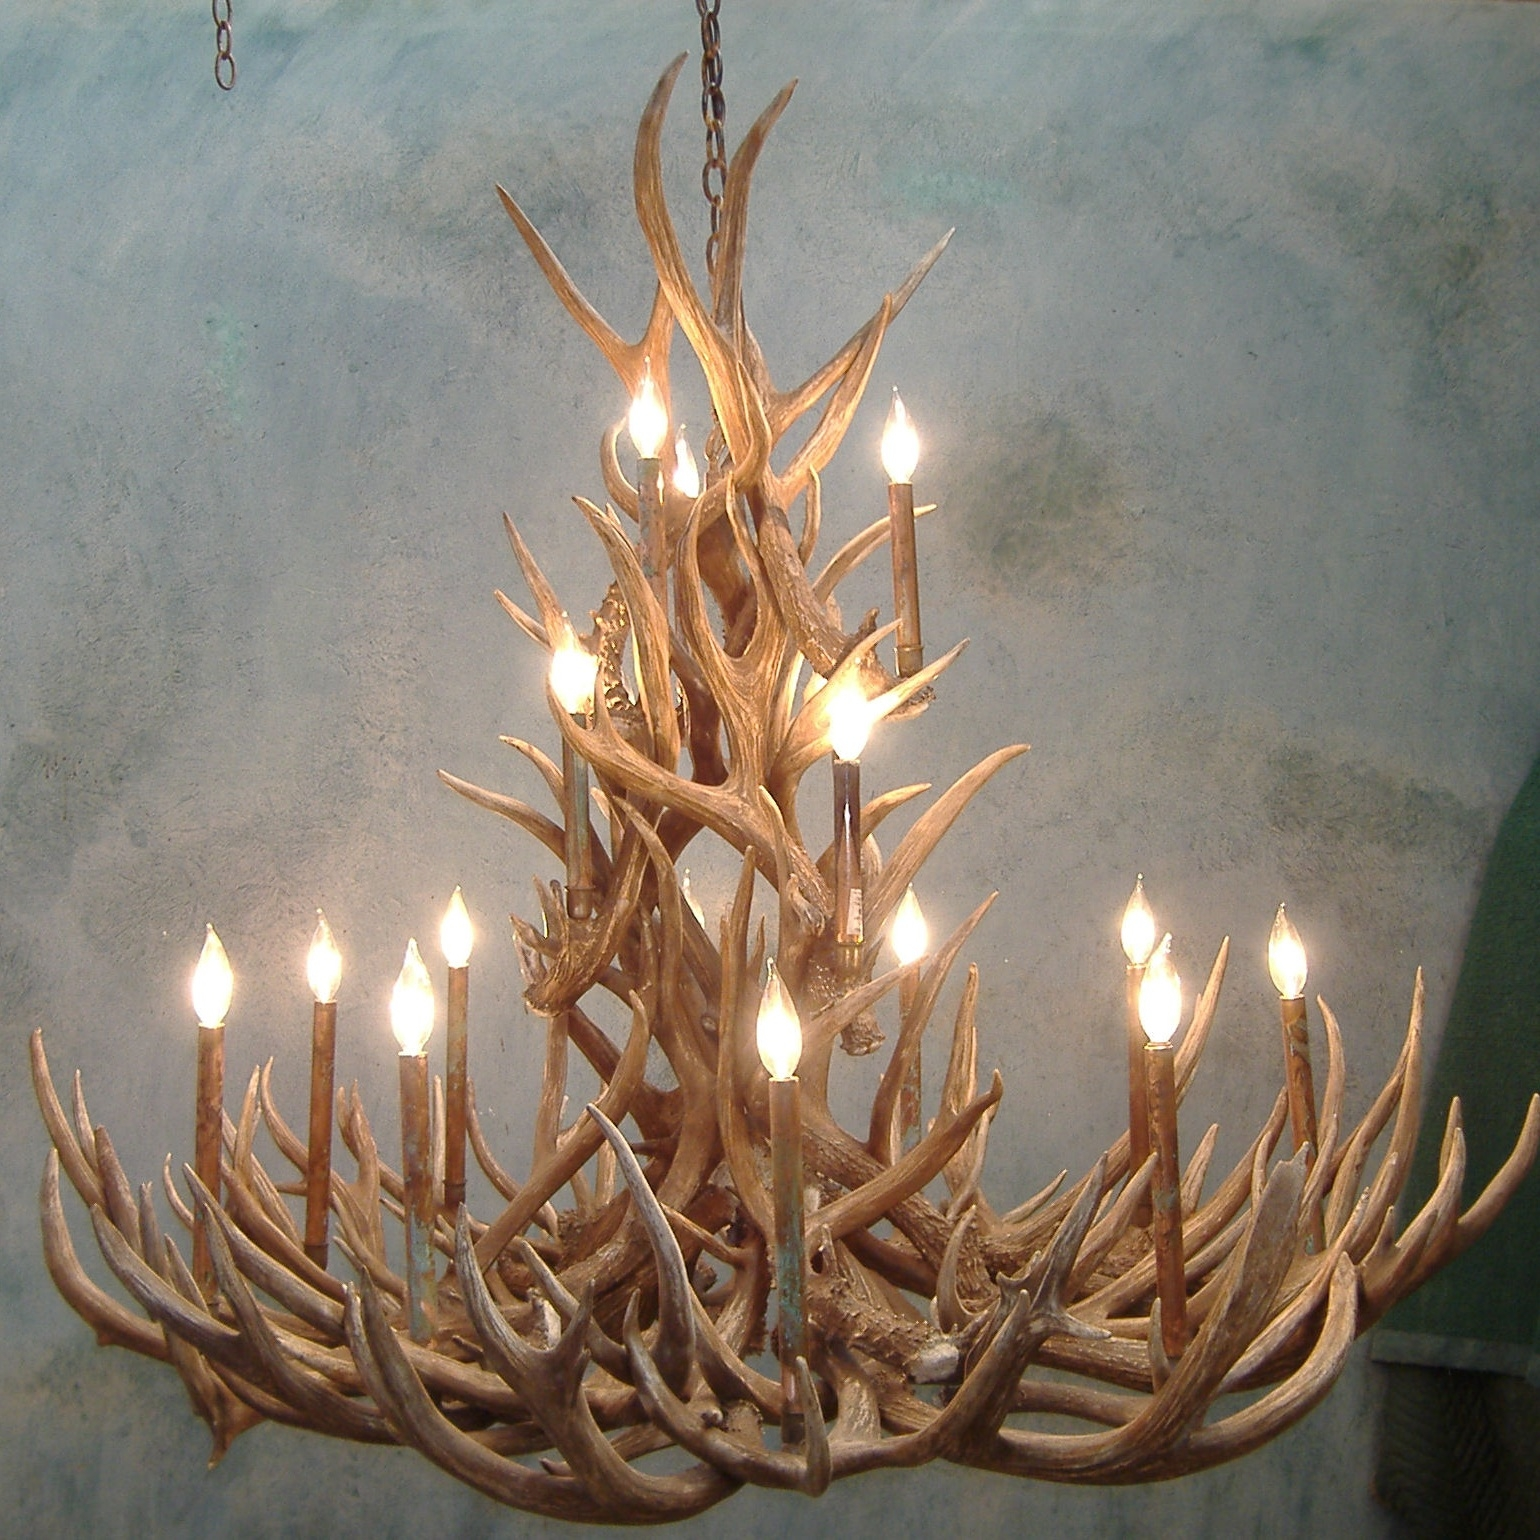 Deer Horn Chandelier Lightupmyparty Throughout Stag Horn Chandelier (Image 7 of 15)